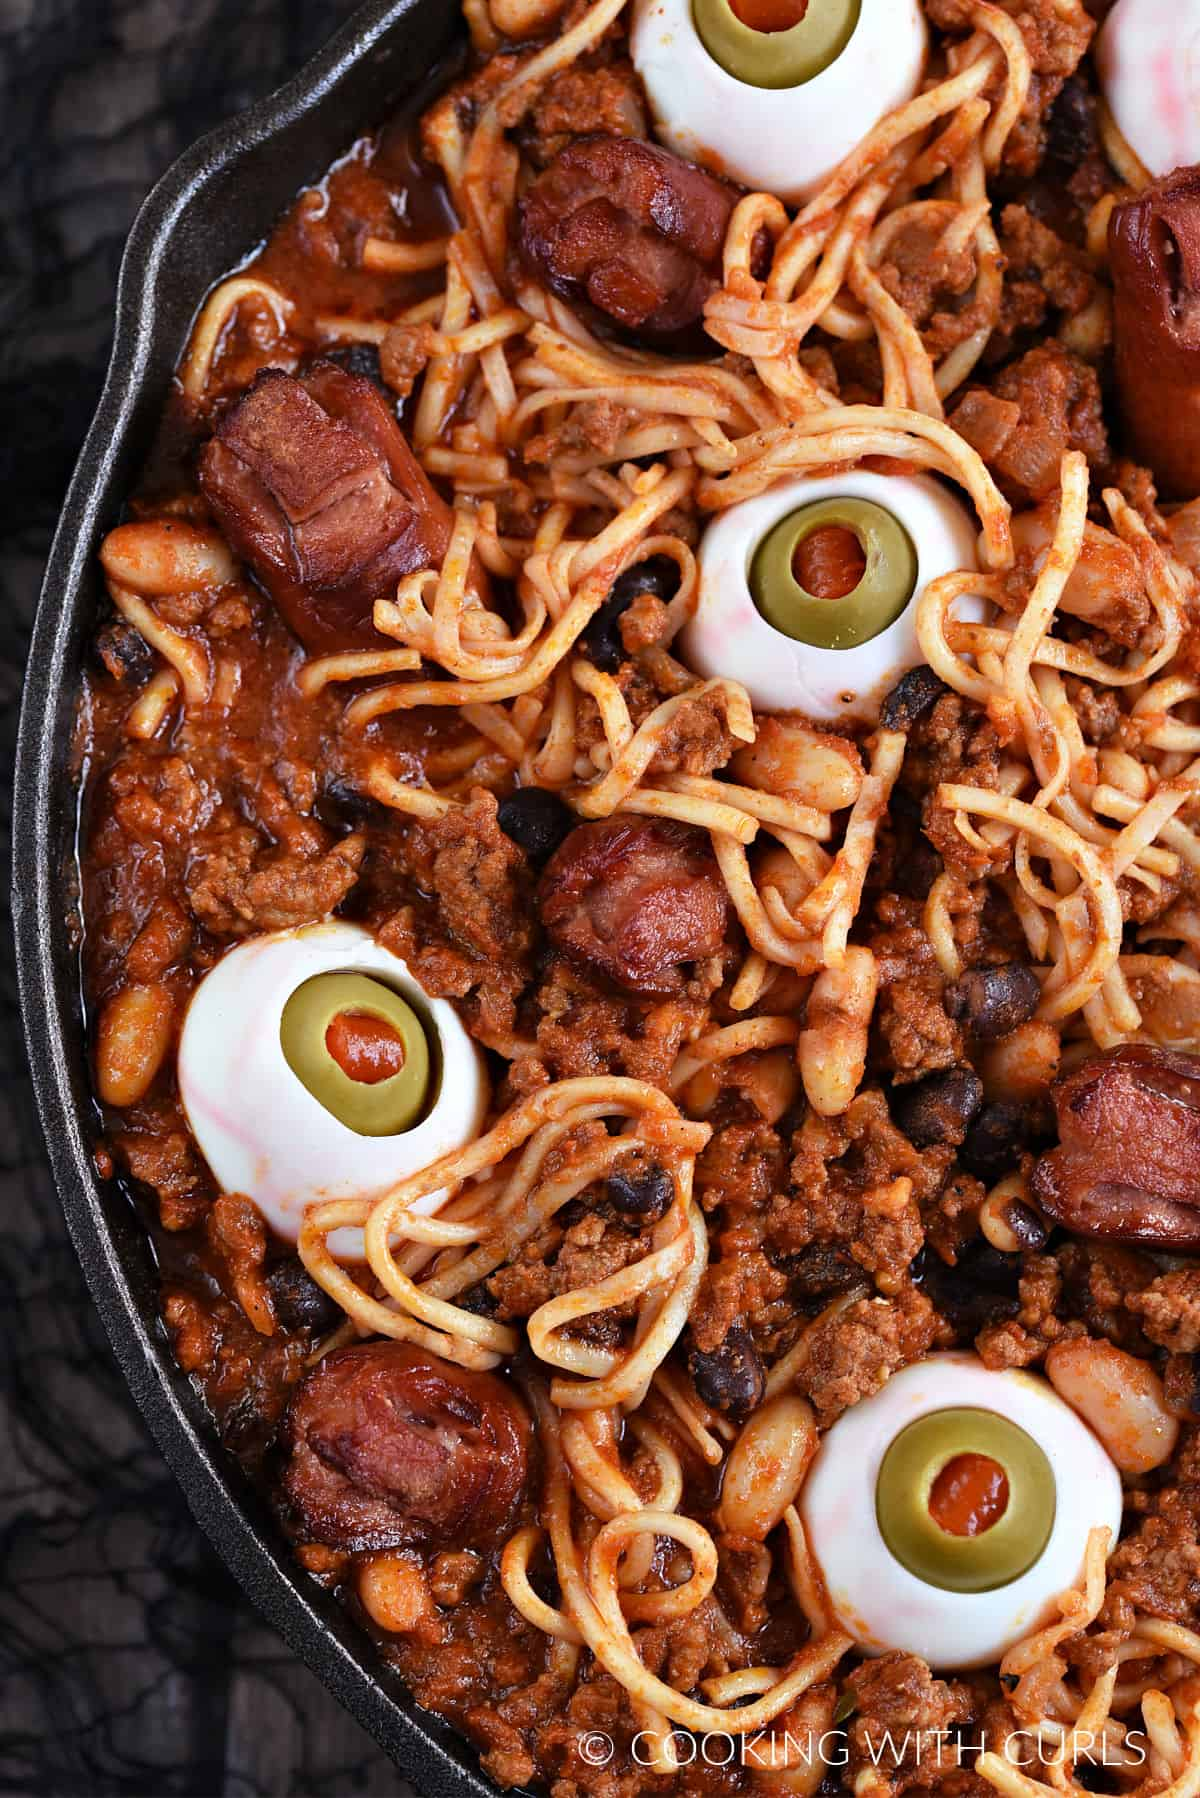 Spooky Halloween Chili with egg eyes, noodle worms, and hot dog fingers and toes in a cast iron skillet..